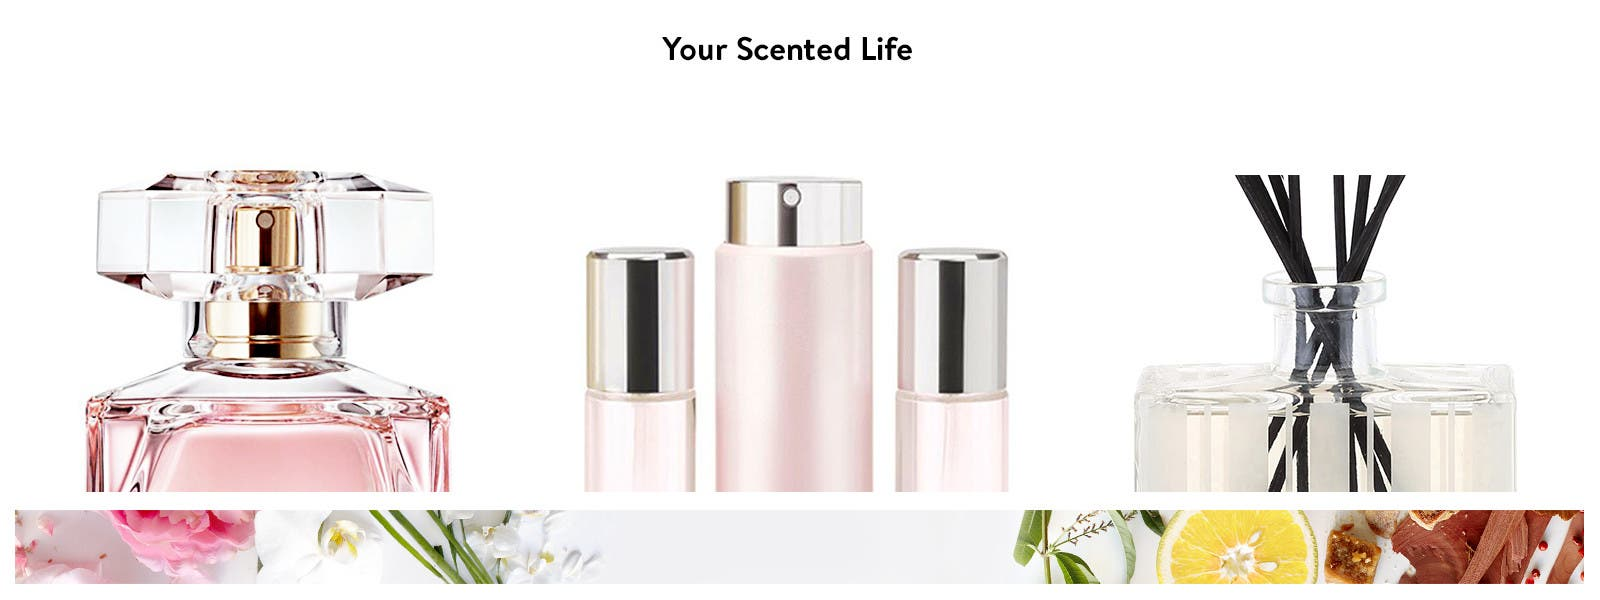 Your scented life.